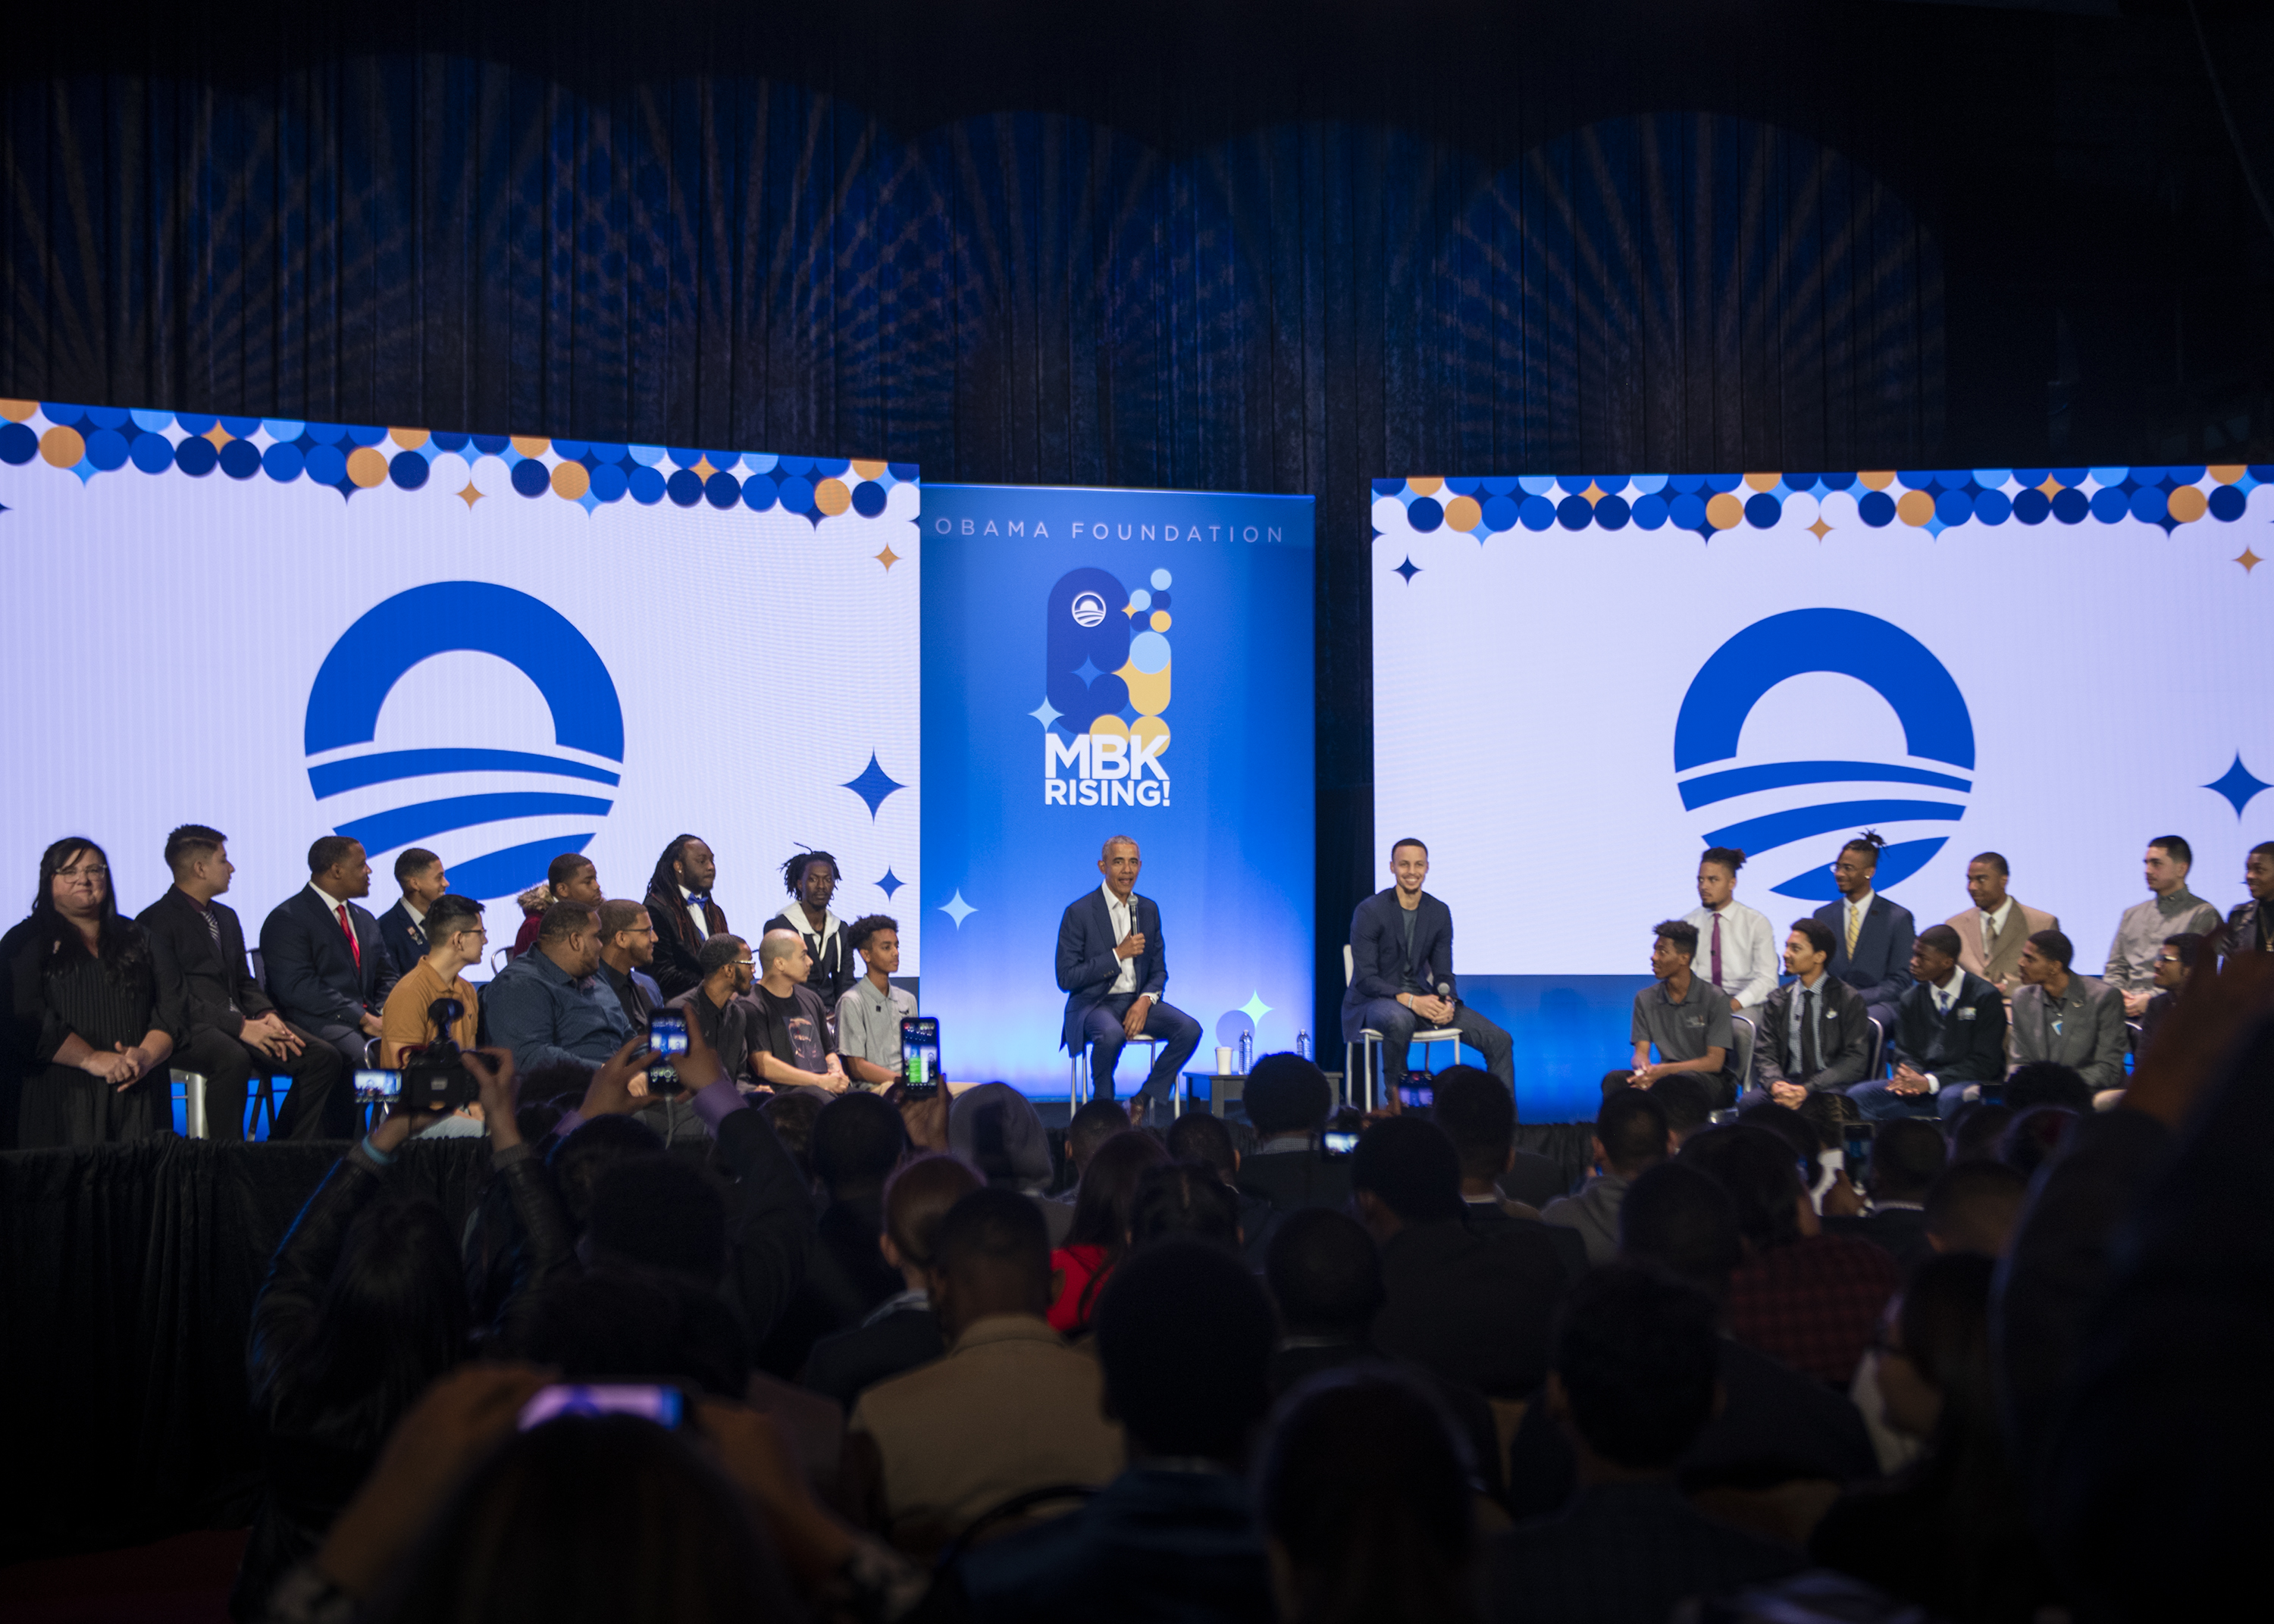 President Obama joins Stephen Curry and a group of young men at MBK Rising! for a mainstage conversation.